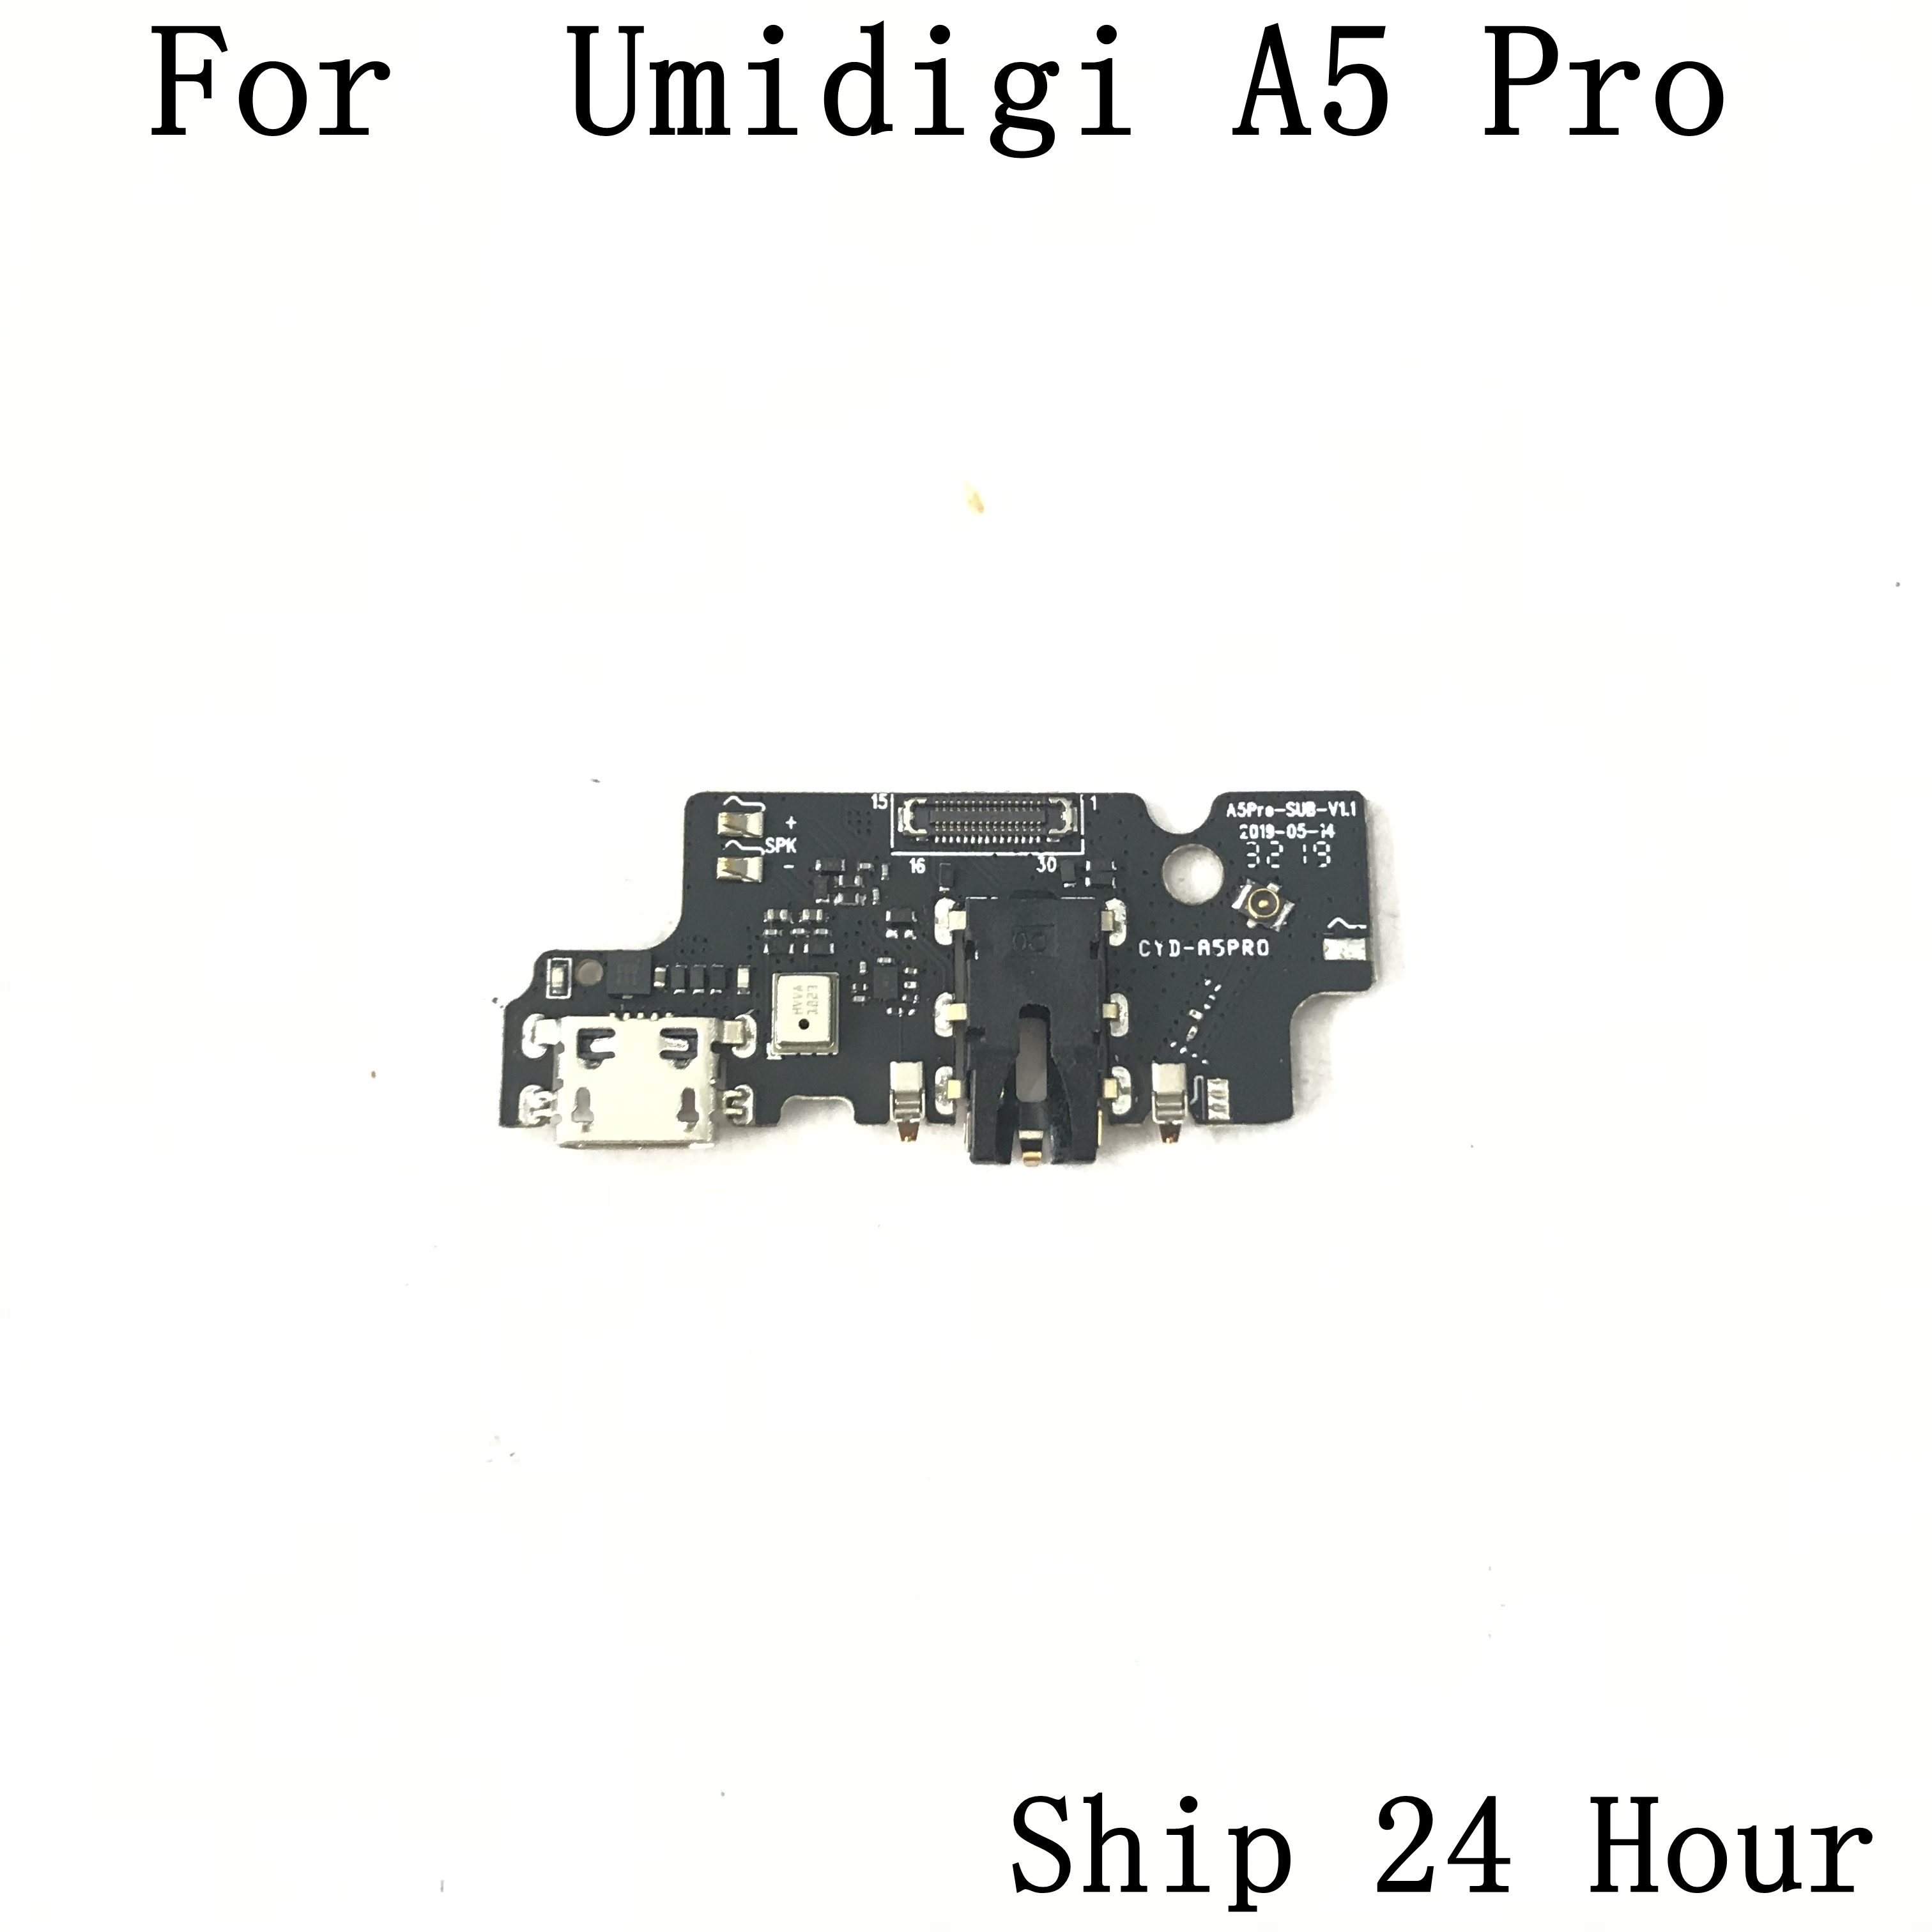 Original Umidigi A5 Pro USB Charge Board + Earphone Jack For Umidigi A5 Pro Repair Fixing Part Replacement Free Shipping|Mobile Phone Circuits| |  - title=